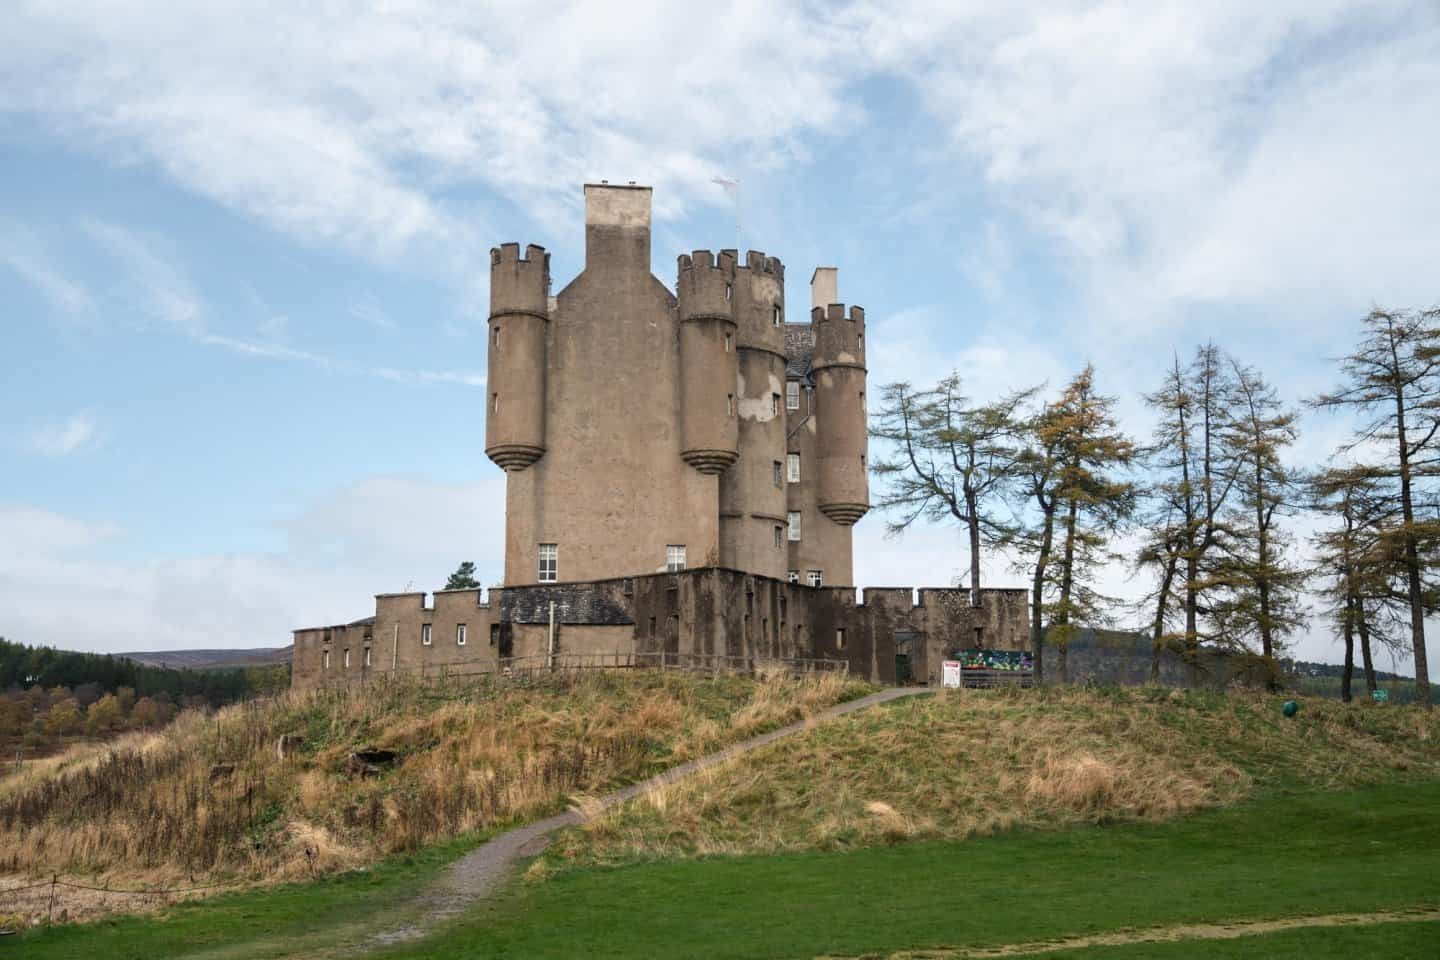 With only 10 days in Scotland, Braemar Castle can be skipped.